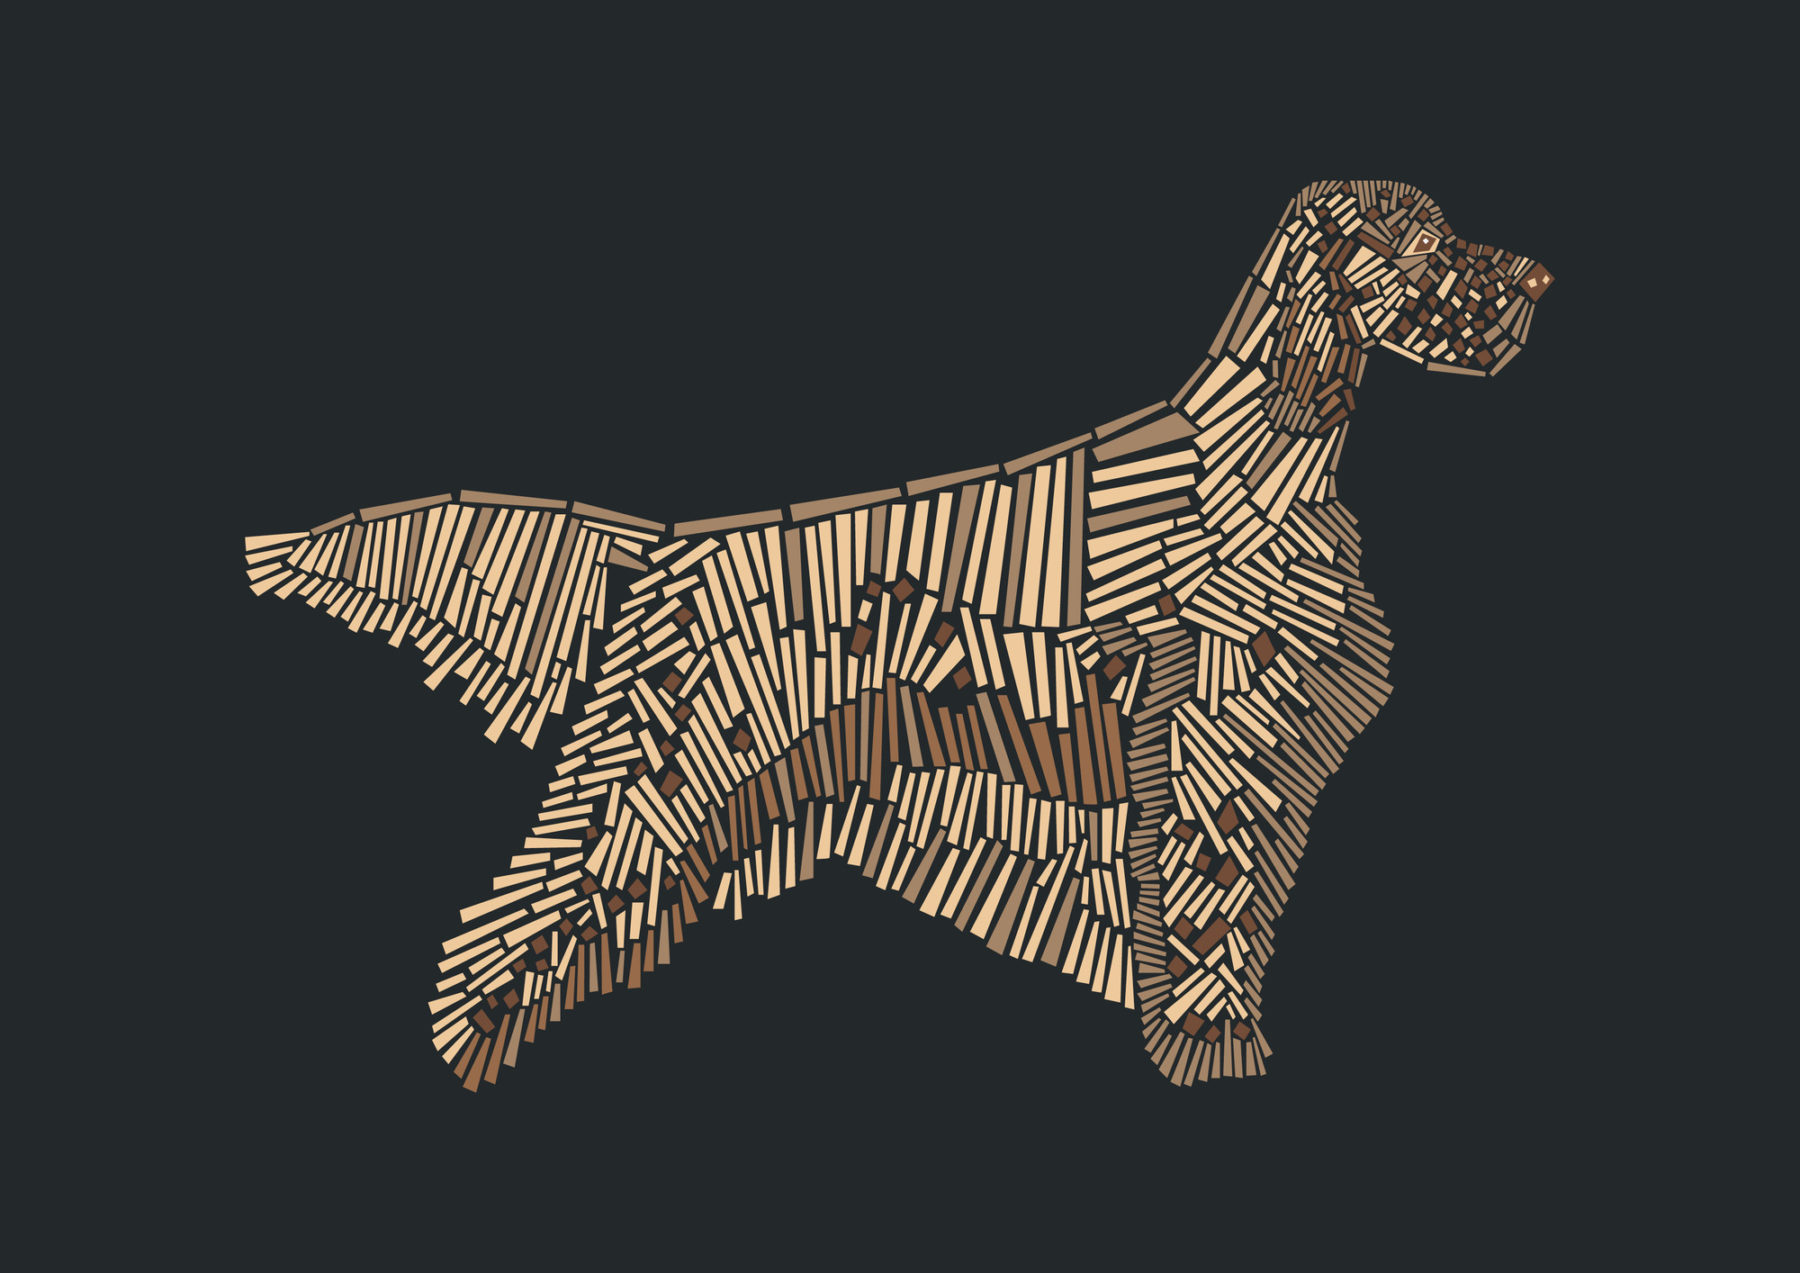 naomi turco Fifty dogs with graphic lines 21